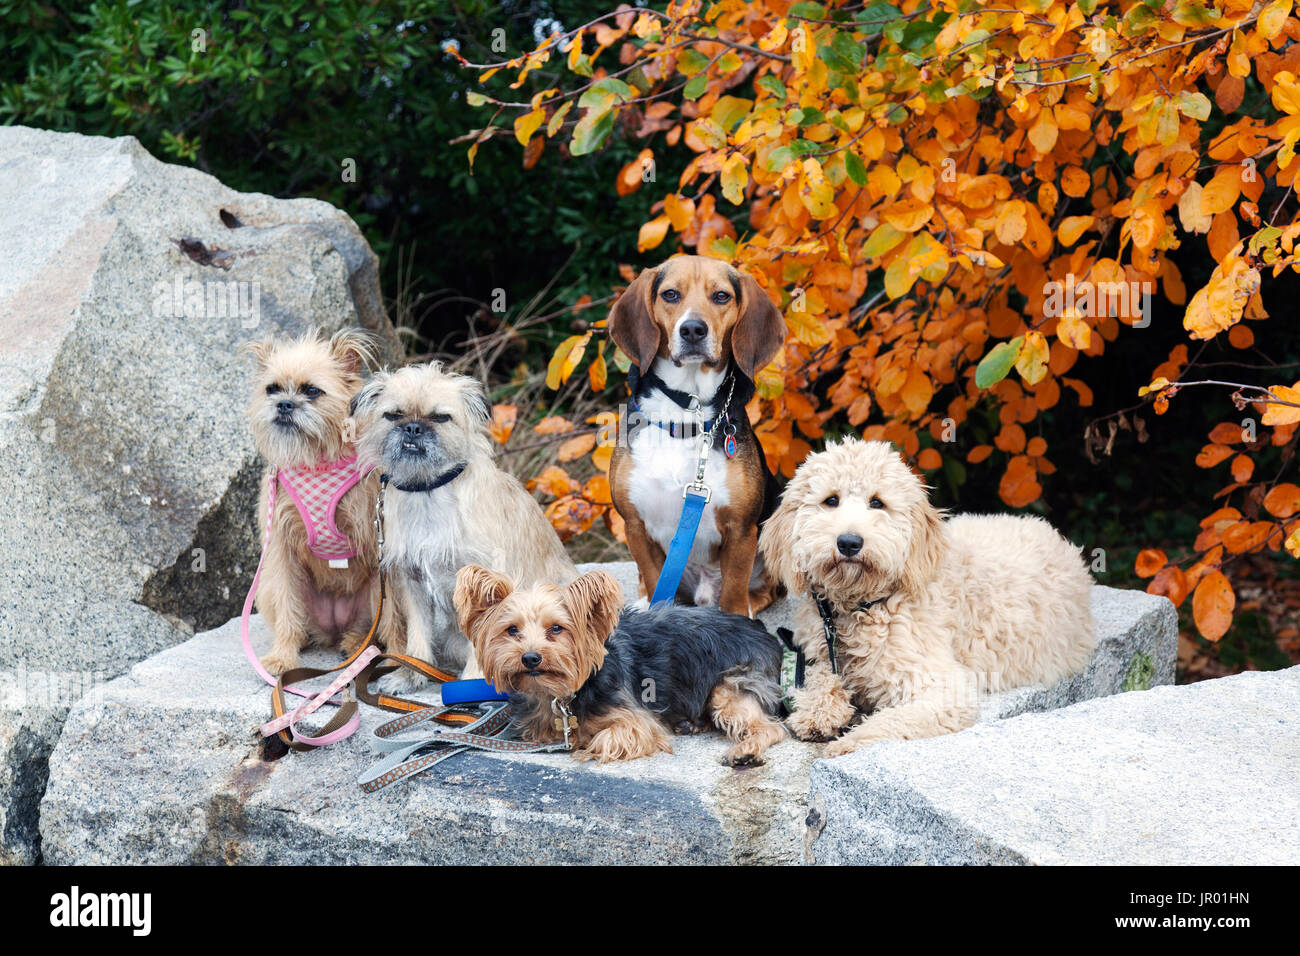 Dogs in the park - Stock Image